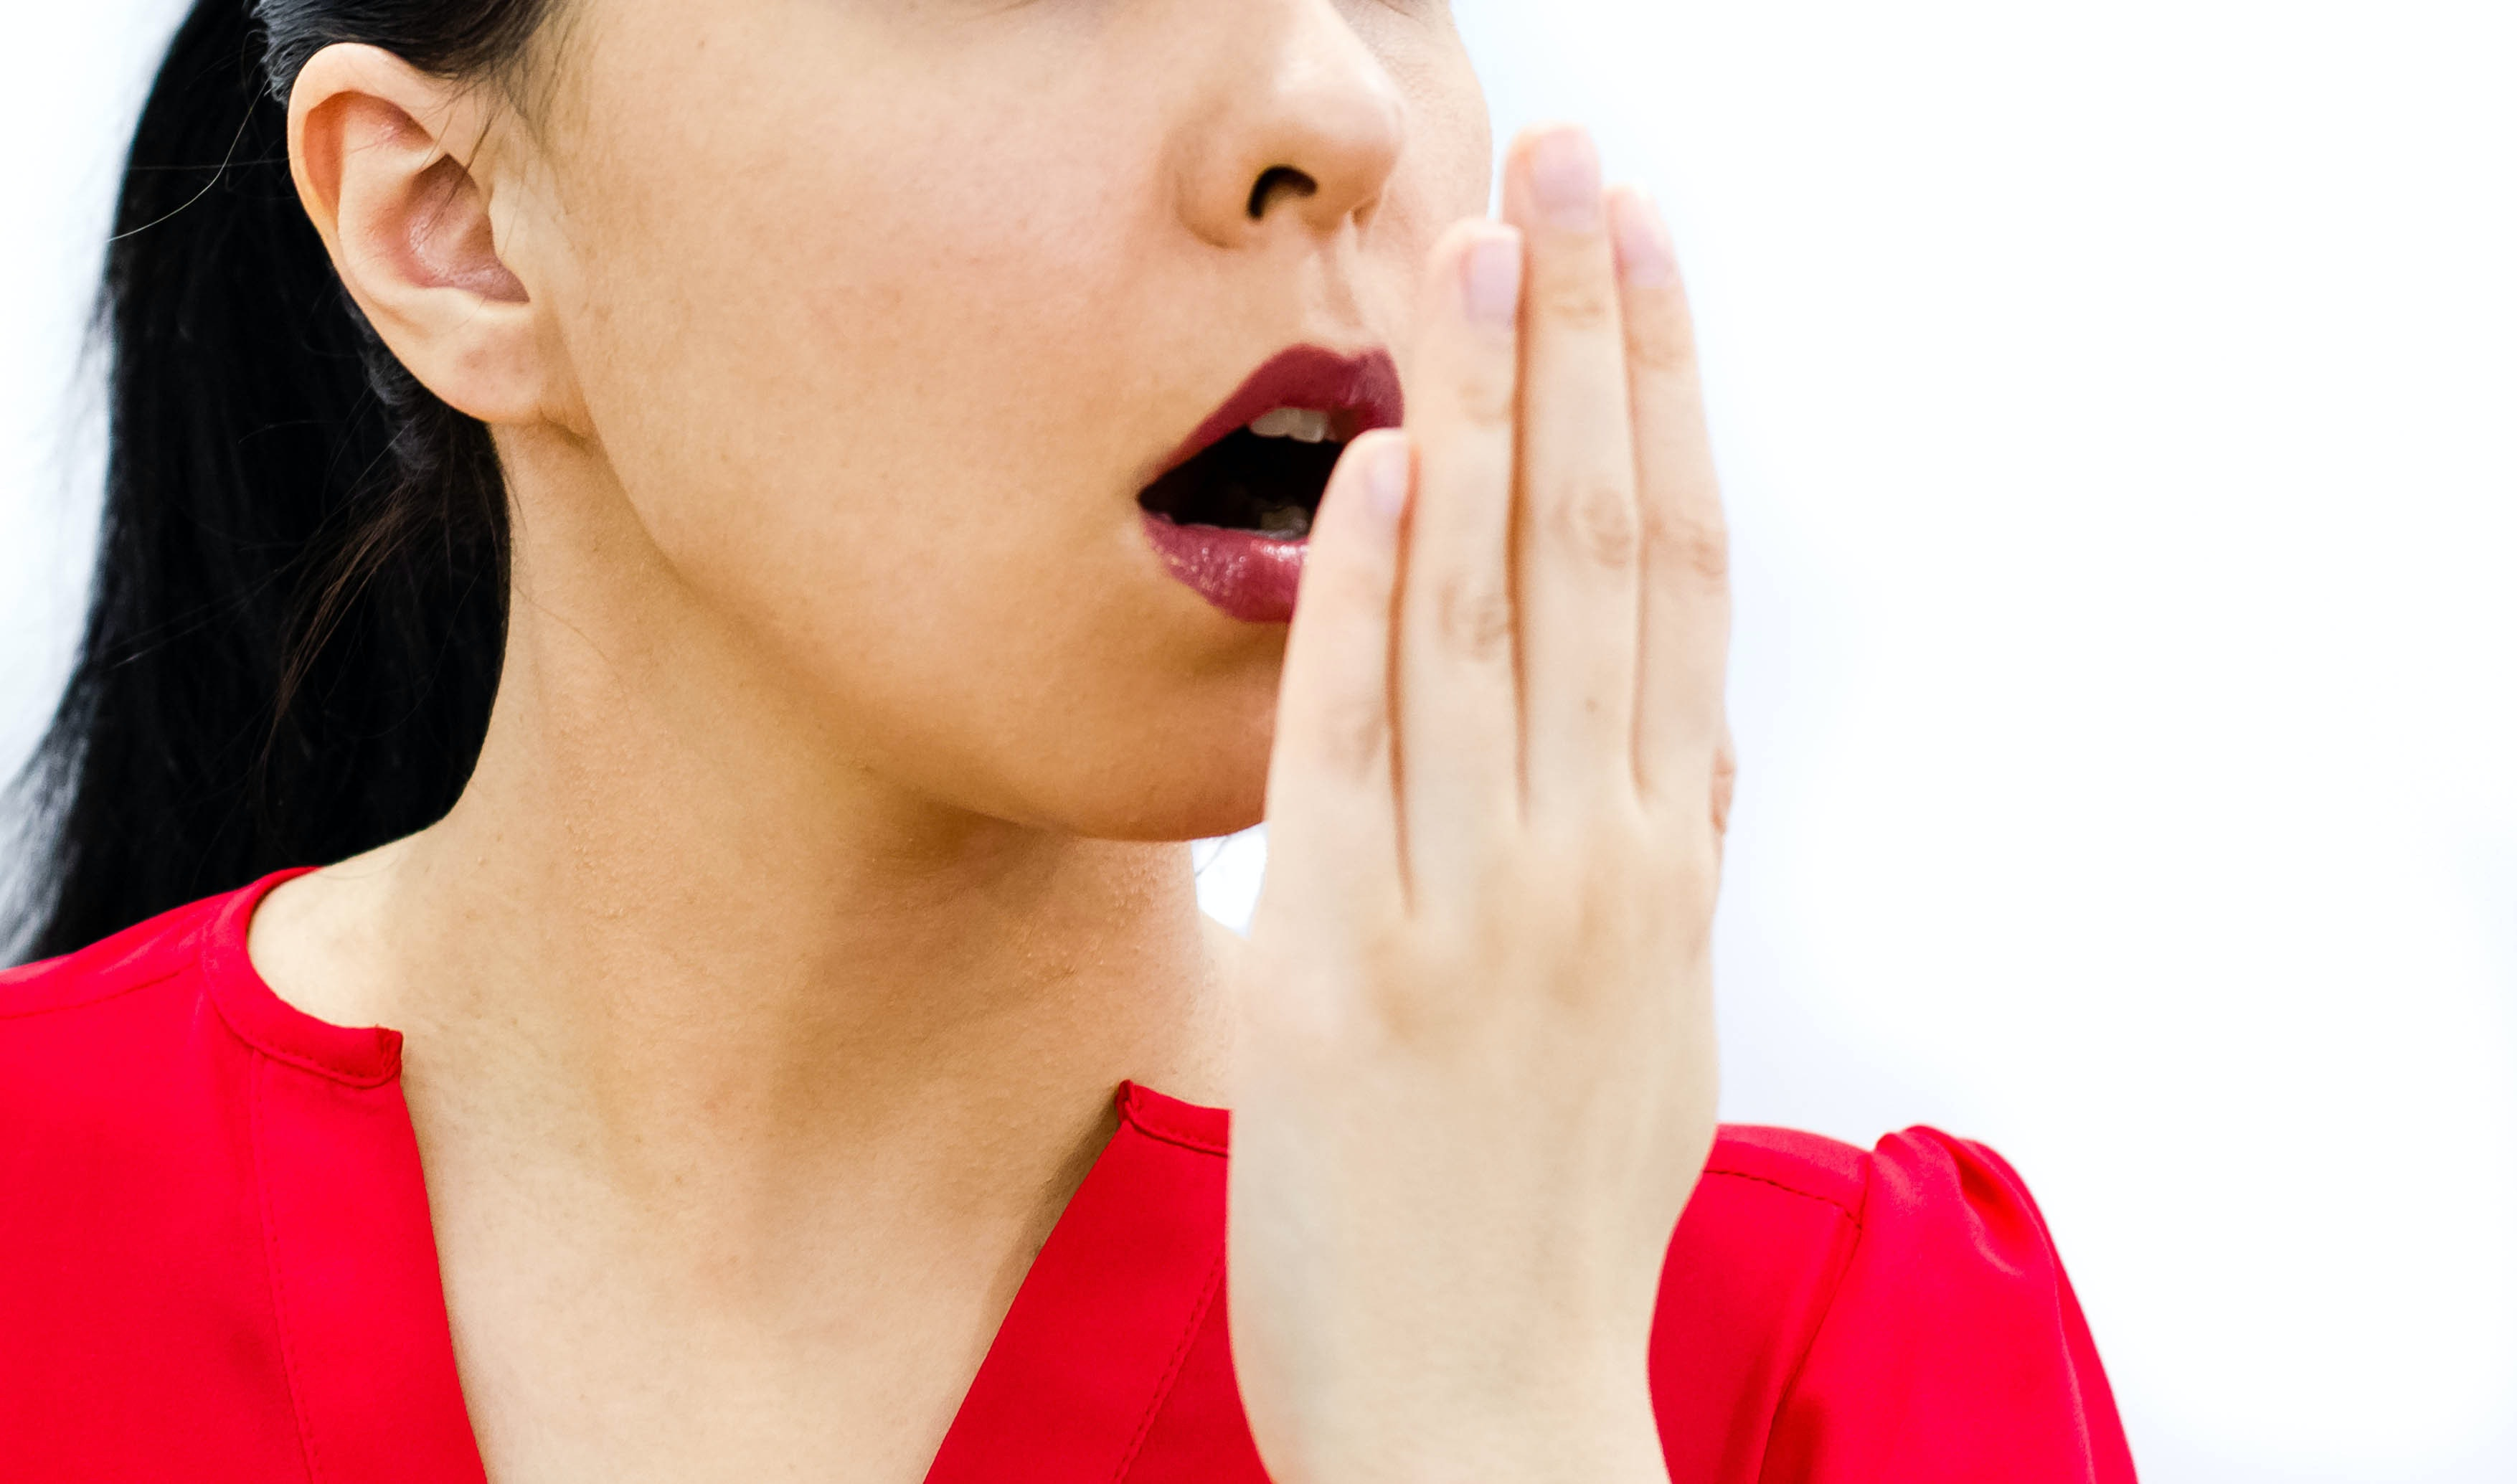 An image depicting a person suffering from fruity odor on breath symptoms